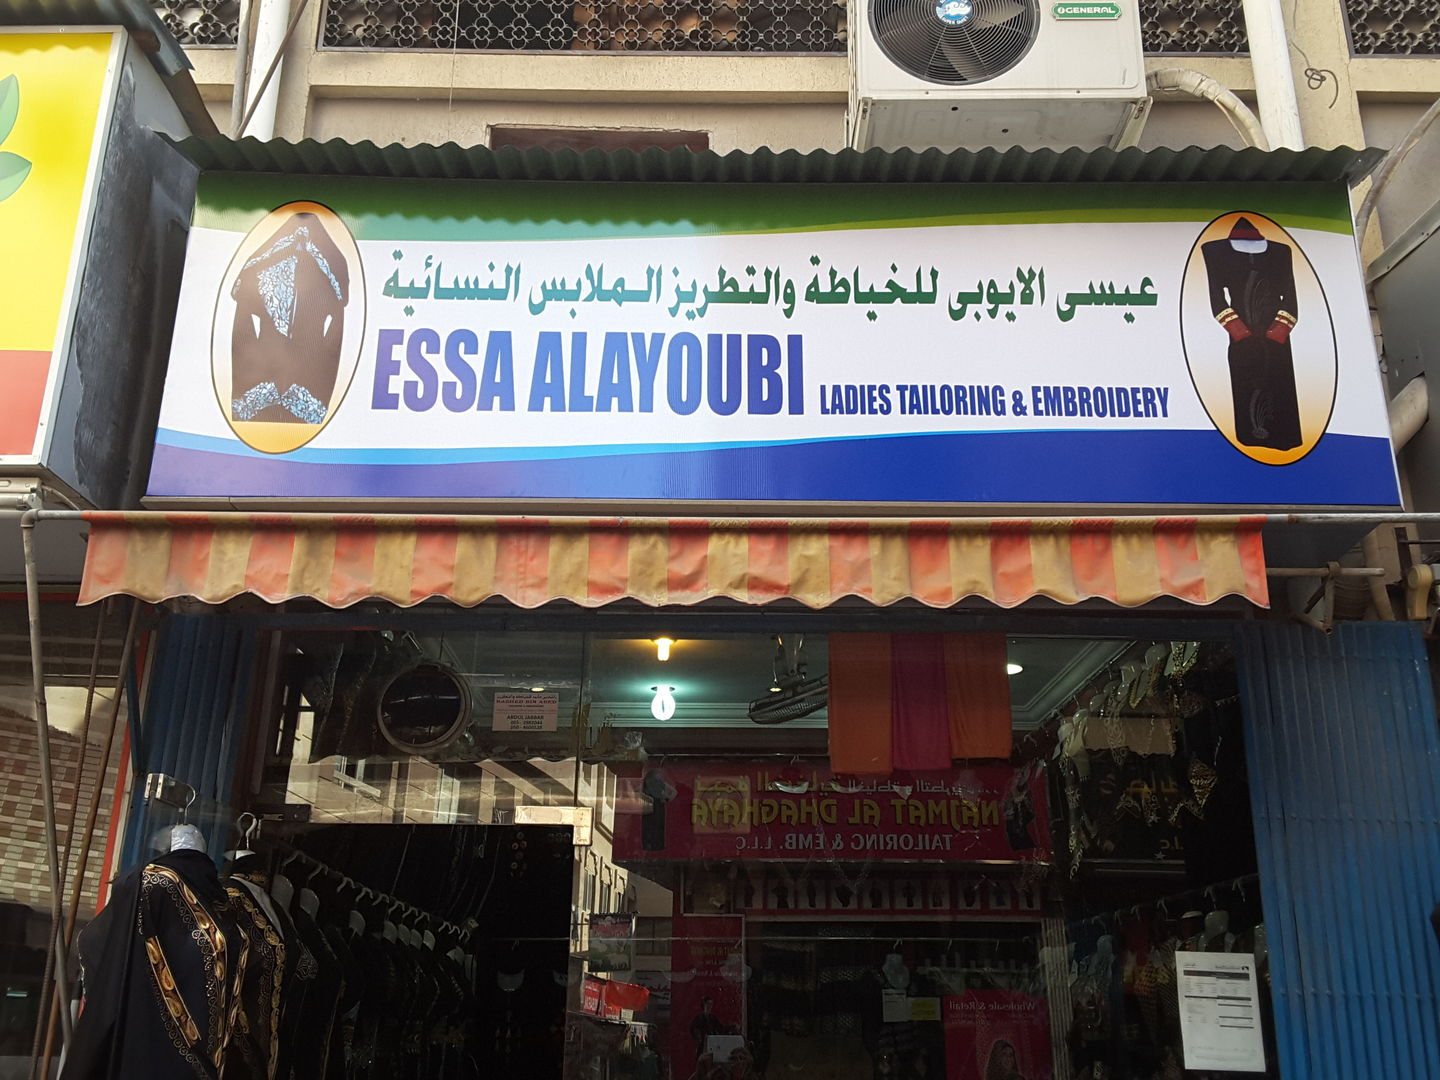 HiDubai-business-essa-alayoubi-ladies-tailoring-embroidery-b2b-services-distributors-wholesalers-ayal-nasir-dubai-2